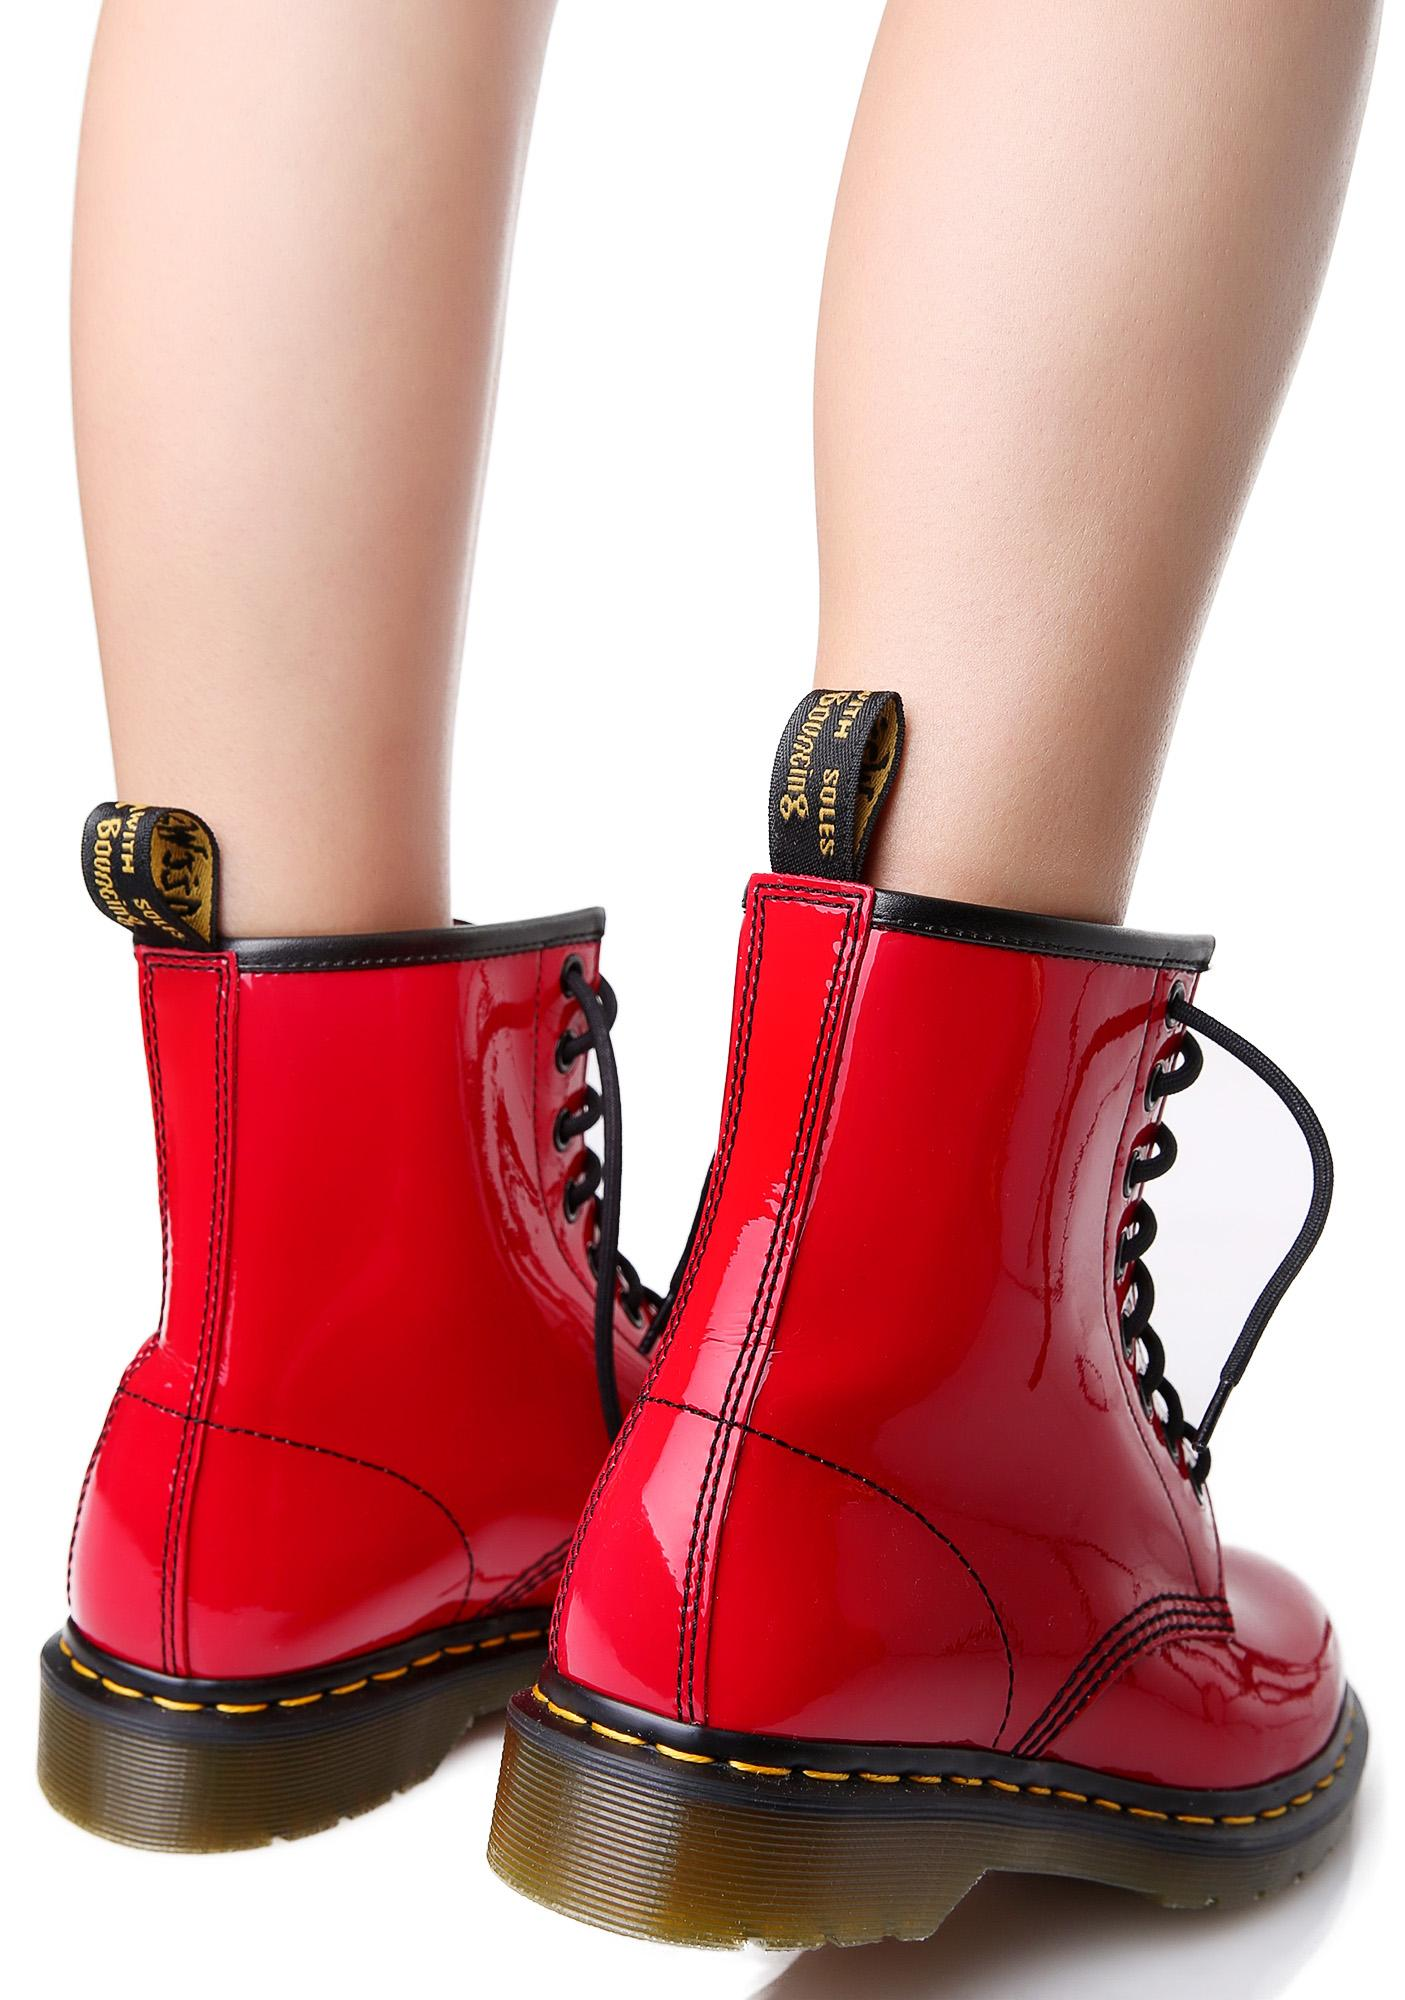 Dr. Martens Red Patent 1460 8 Eye Boots